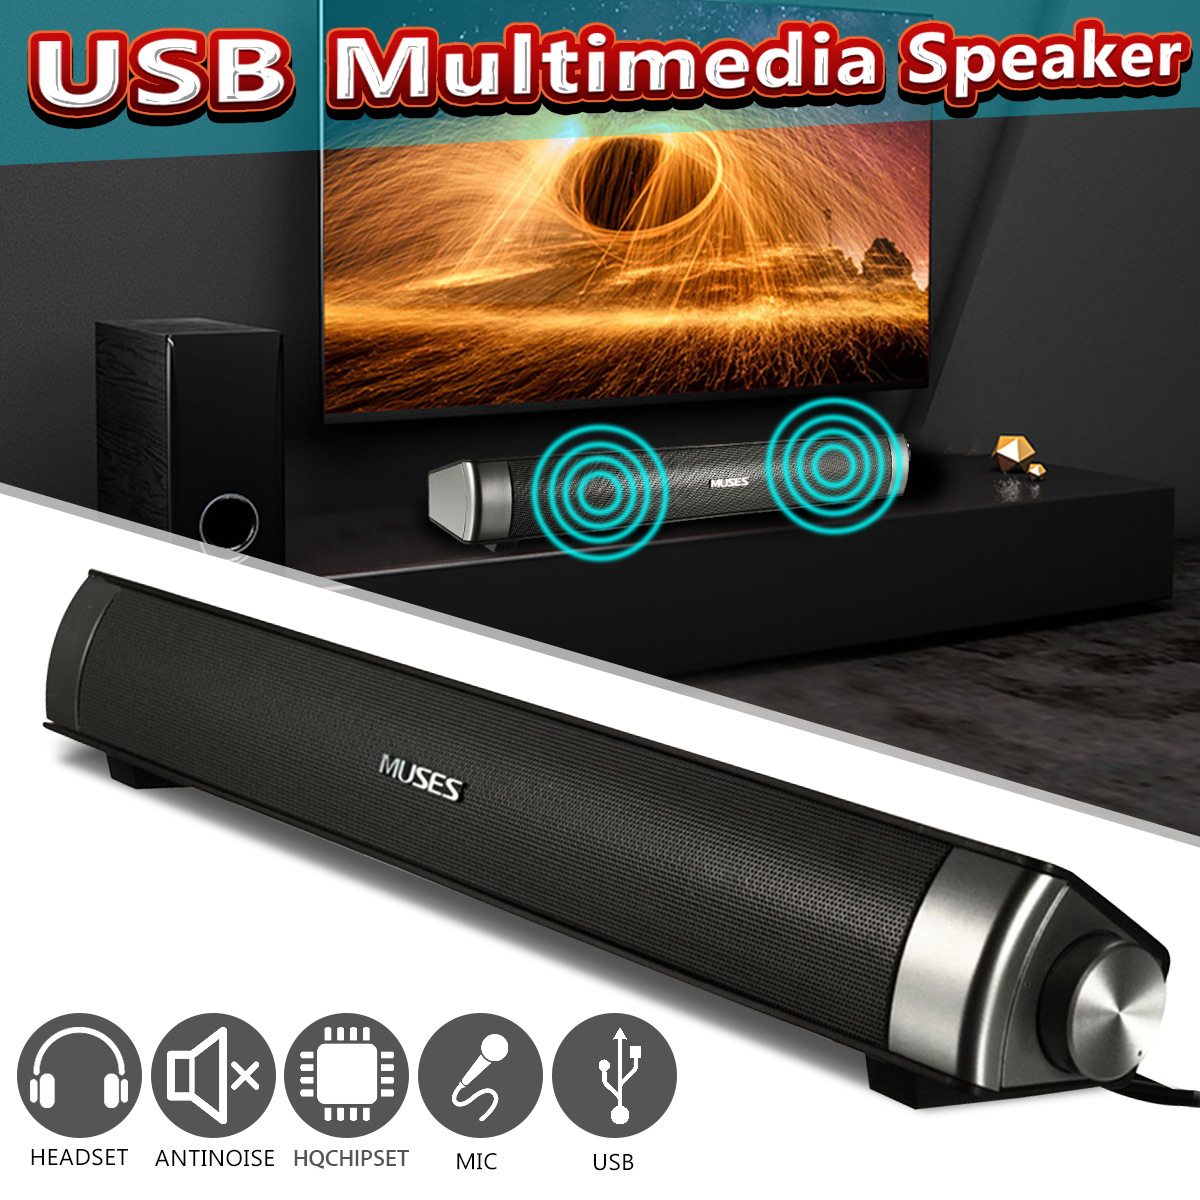 Wired Soundbar Lautsprecher System 6W USB Multimedia Audio HIFI Stereo Sound Bar Für Computer PC Laptop Desktop Smart Telefon